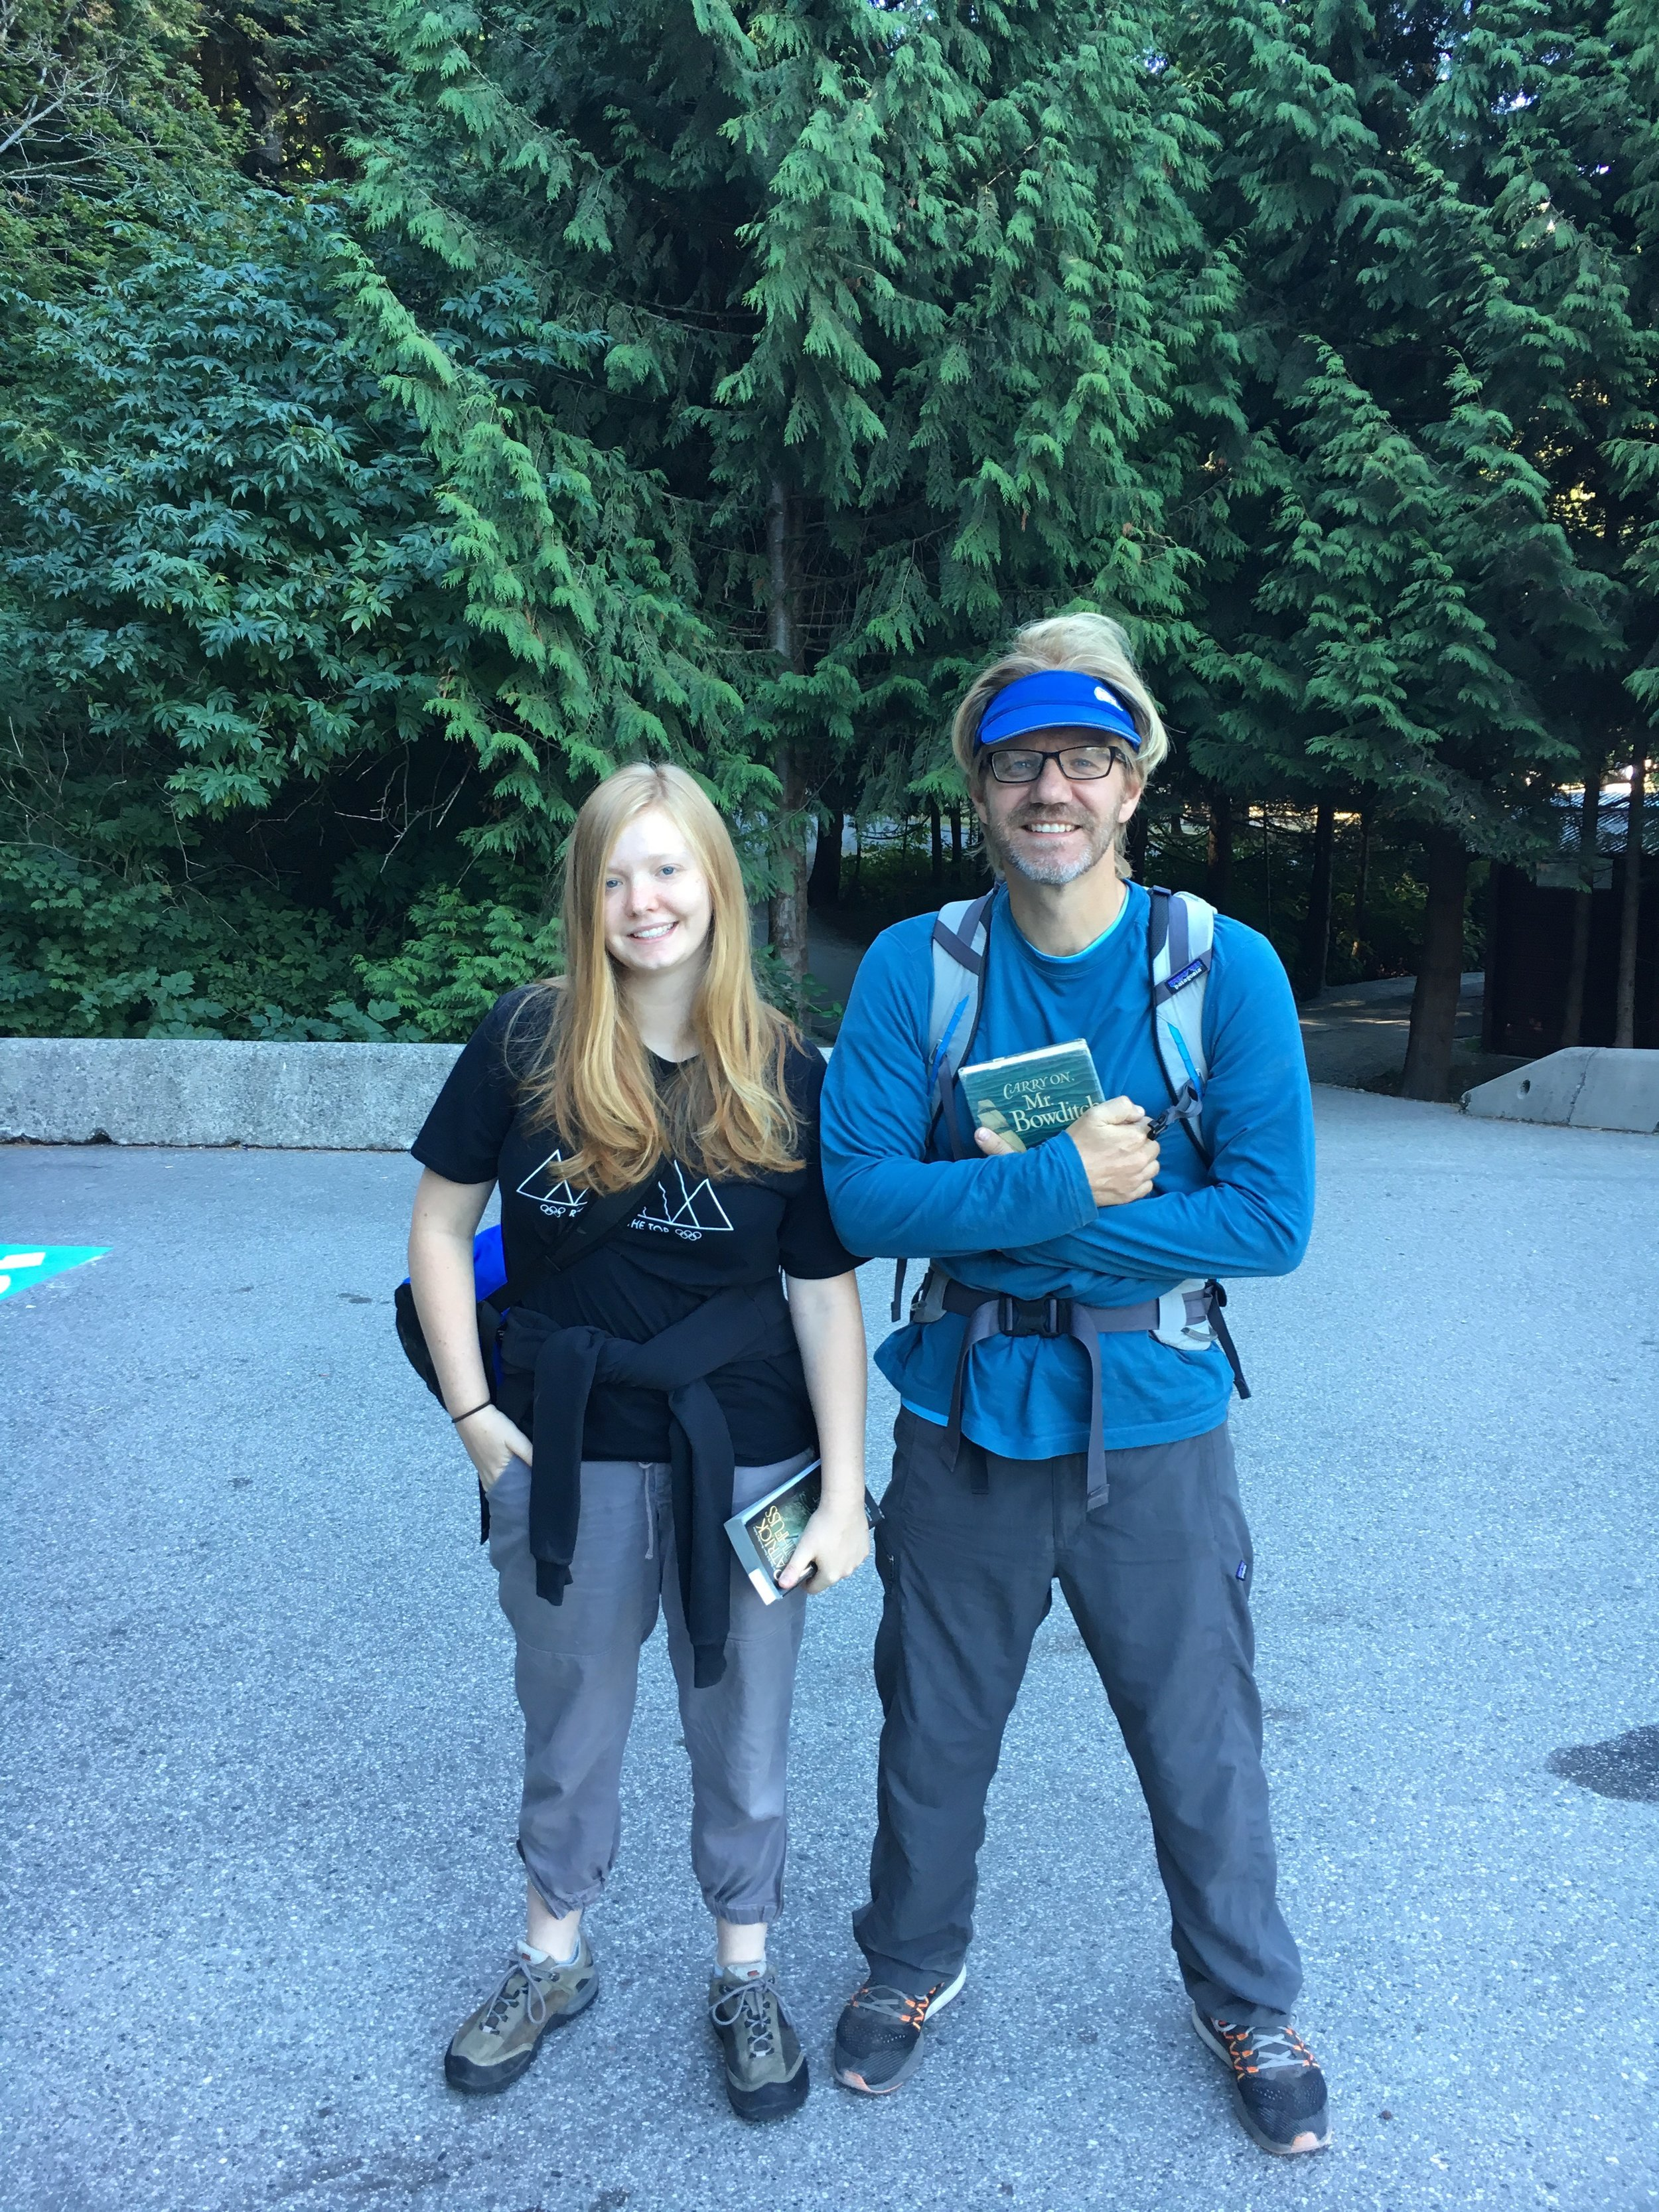 Always ready to wait for a good climb. They are on Skywalker in Shannon Falls right now. I'm sure pictures will come.